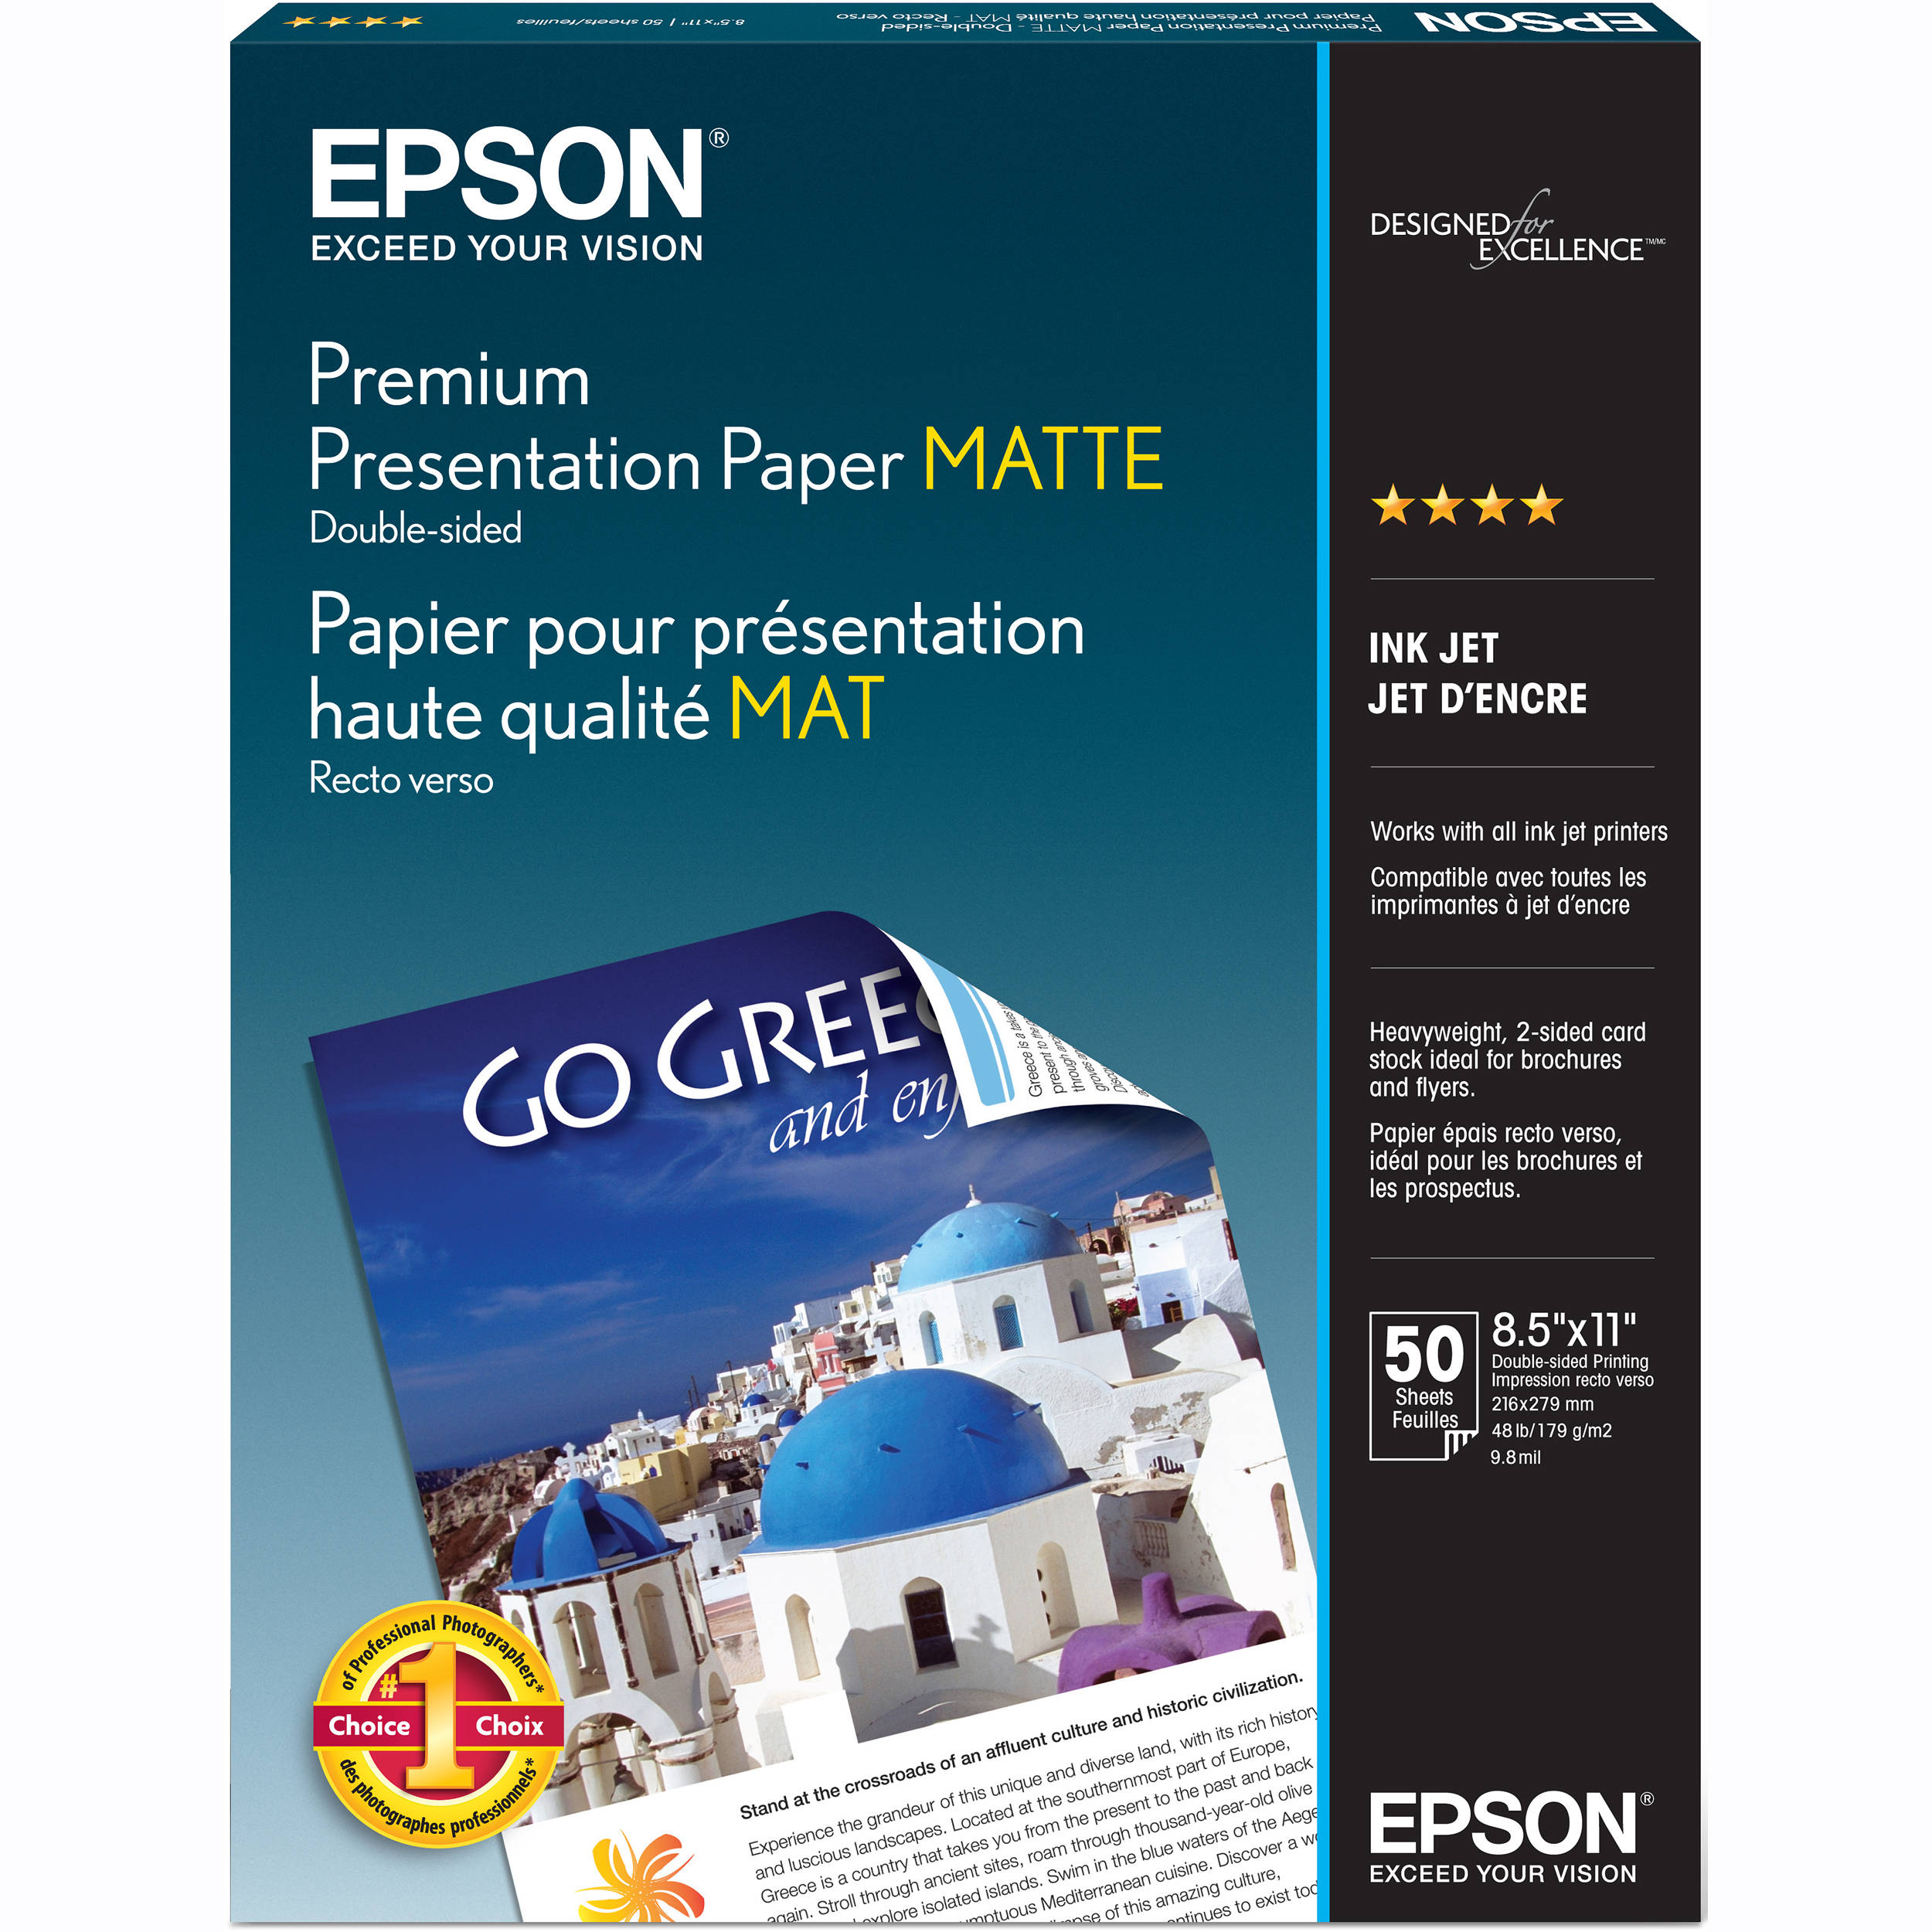 Epson Premium Presentation Paper Matte Double Sided